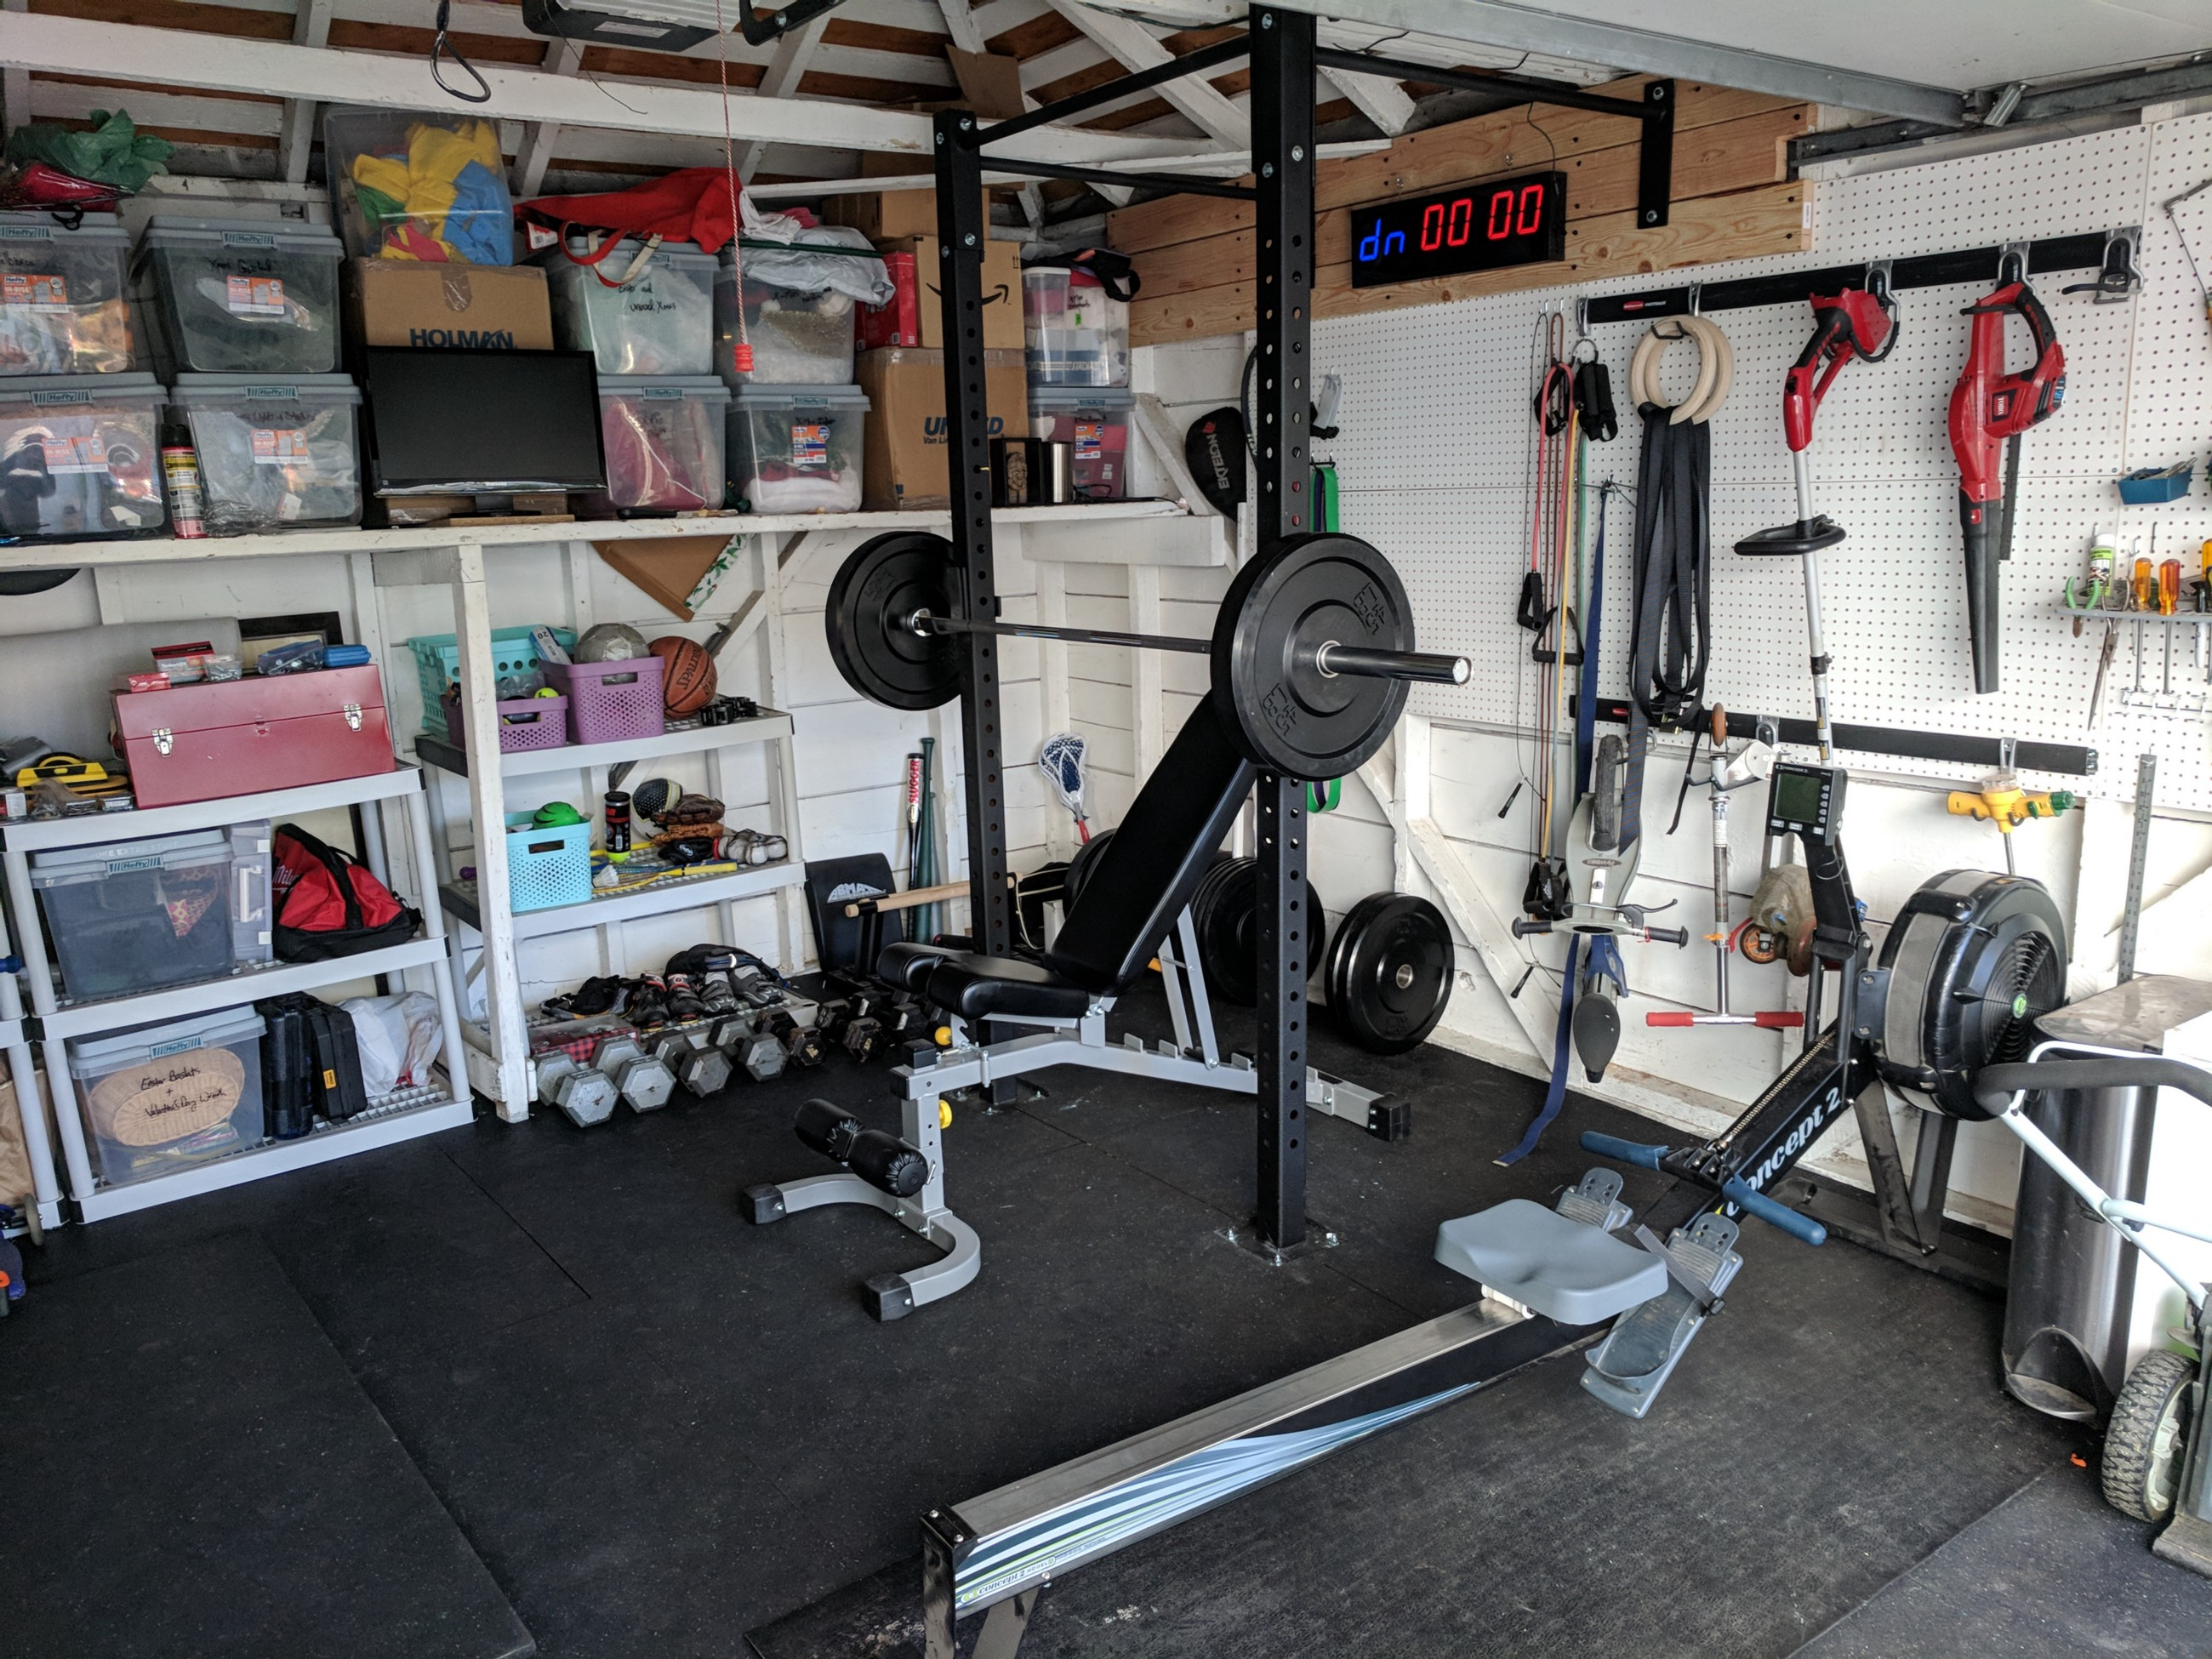 Diy the garage gym u adam neary u medium